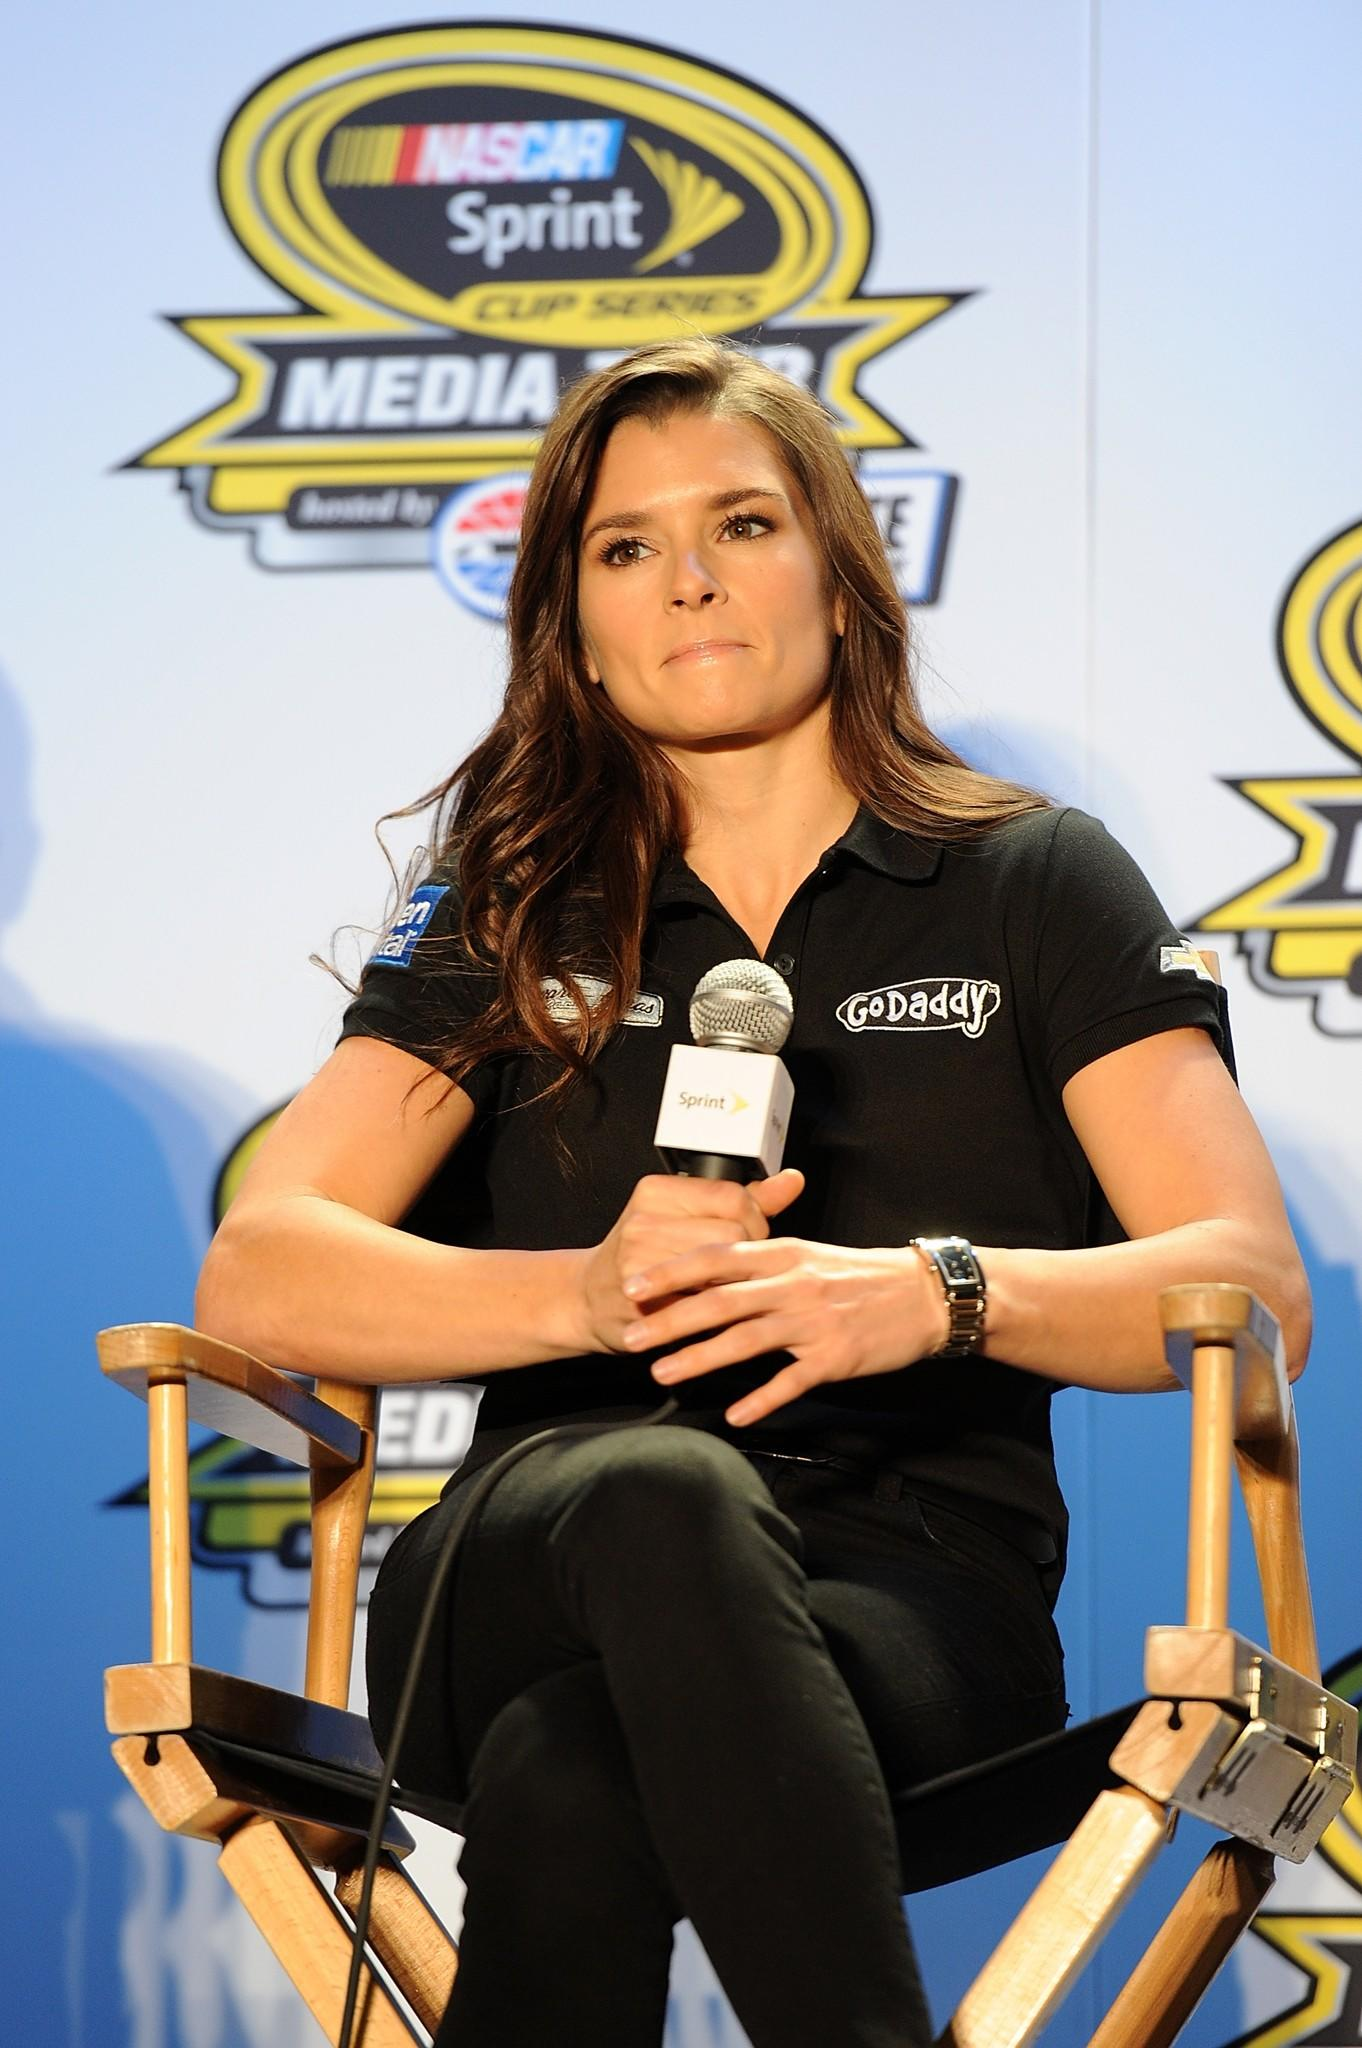 Danica Patrick, driver of the #10 GoDaddy.com Chevrolet, looks on during NASCAR Sprint Media Tour at Charlotte Convention Center.